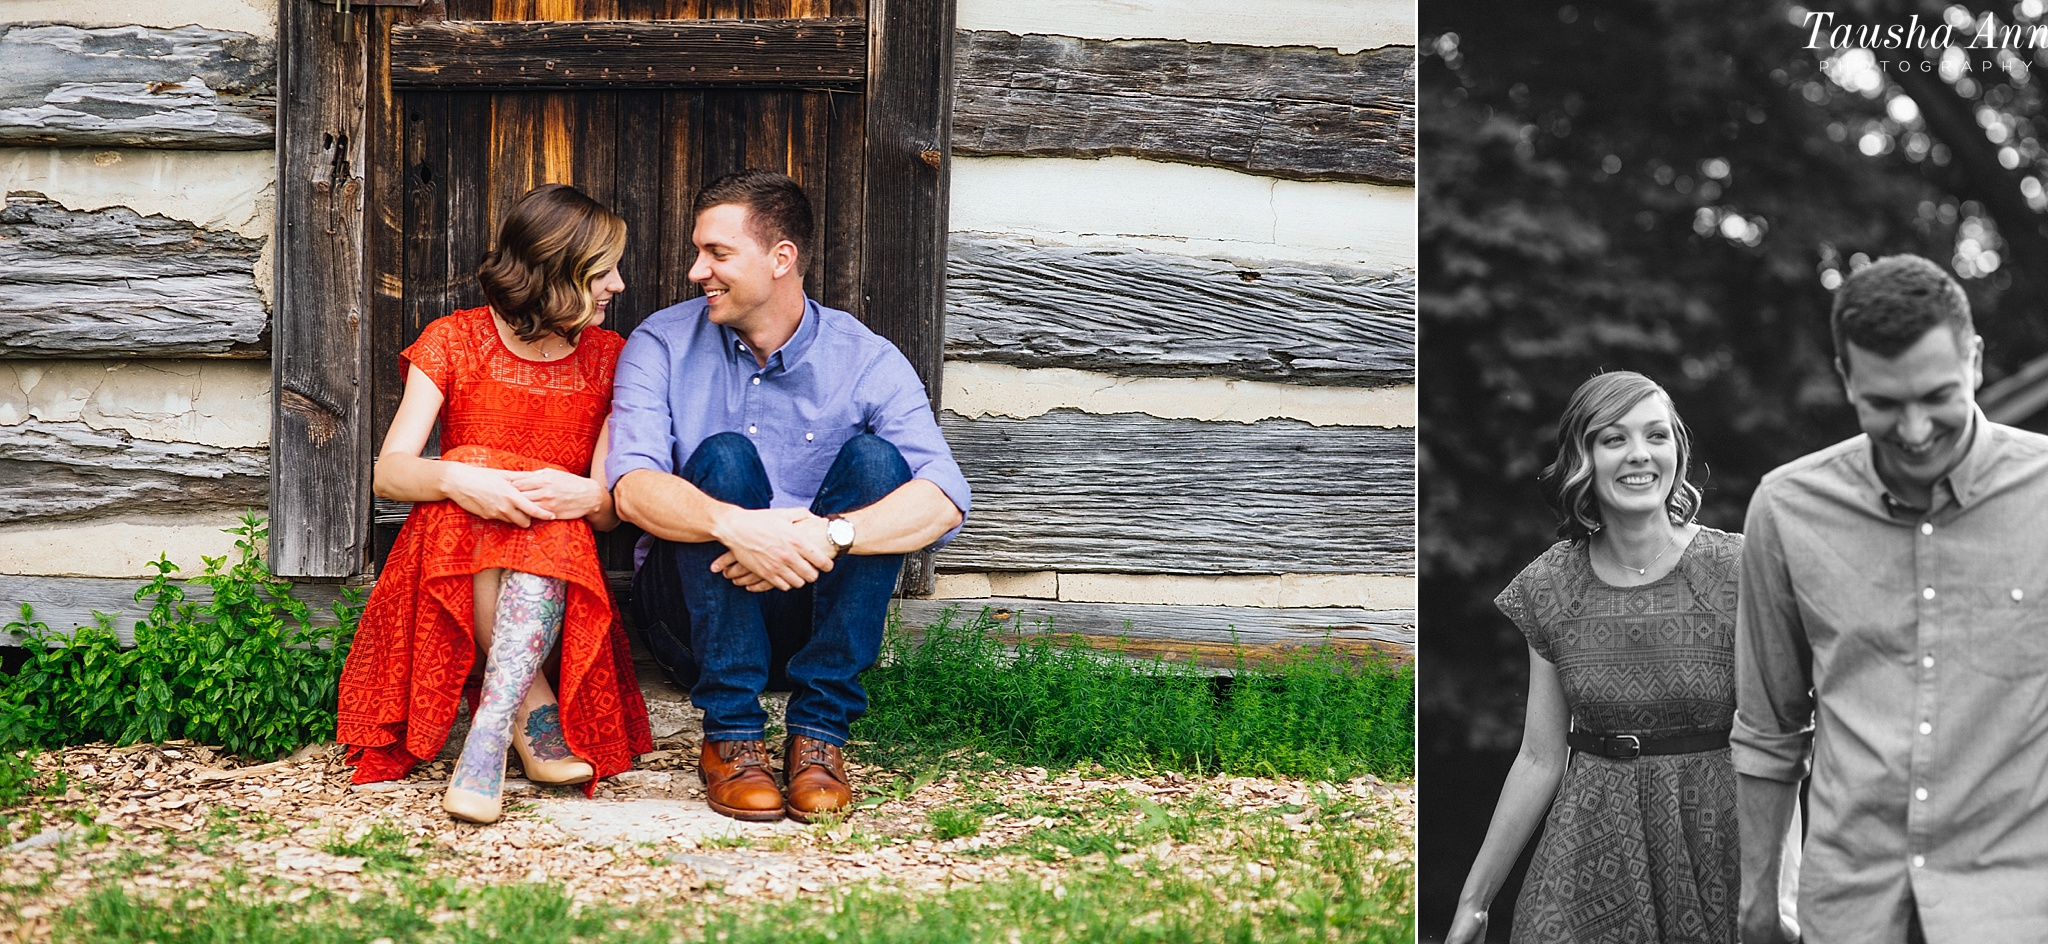 Nashville_engagement_Wedding_Tausha_Ann_Photography_Franklin_TN_Harlinsdale_Farm_Agricultural_Center_Nashville_0099